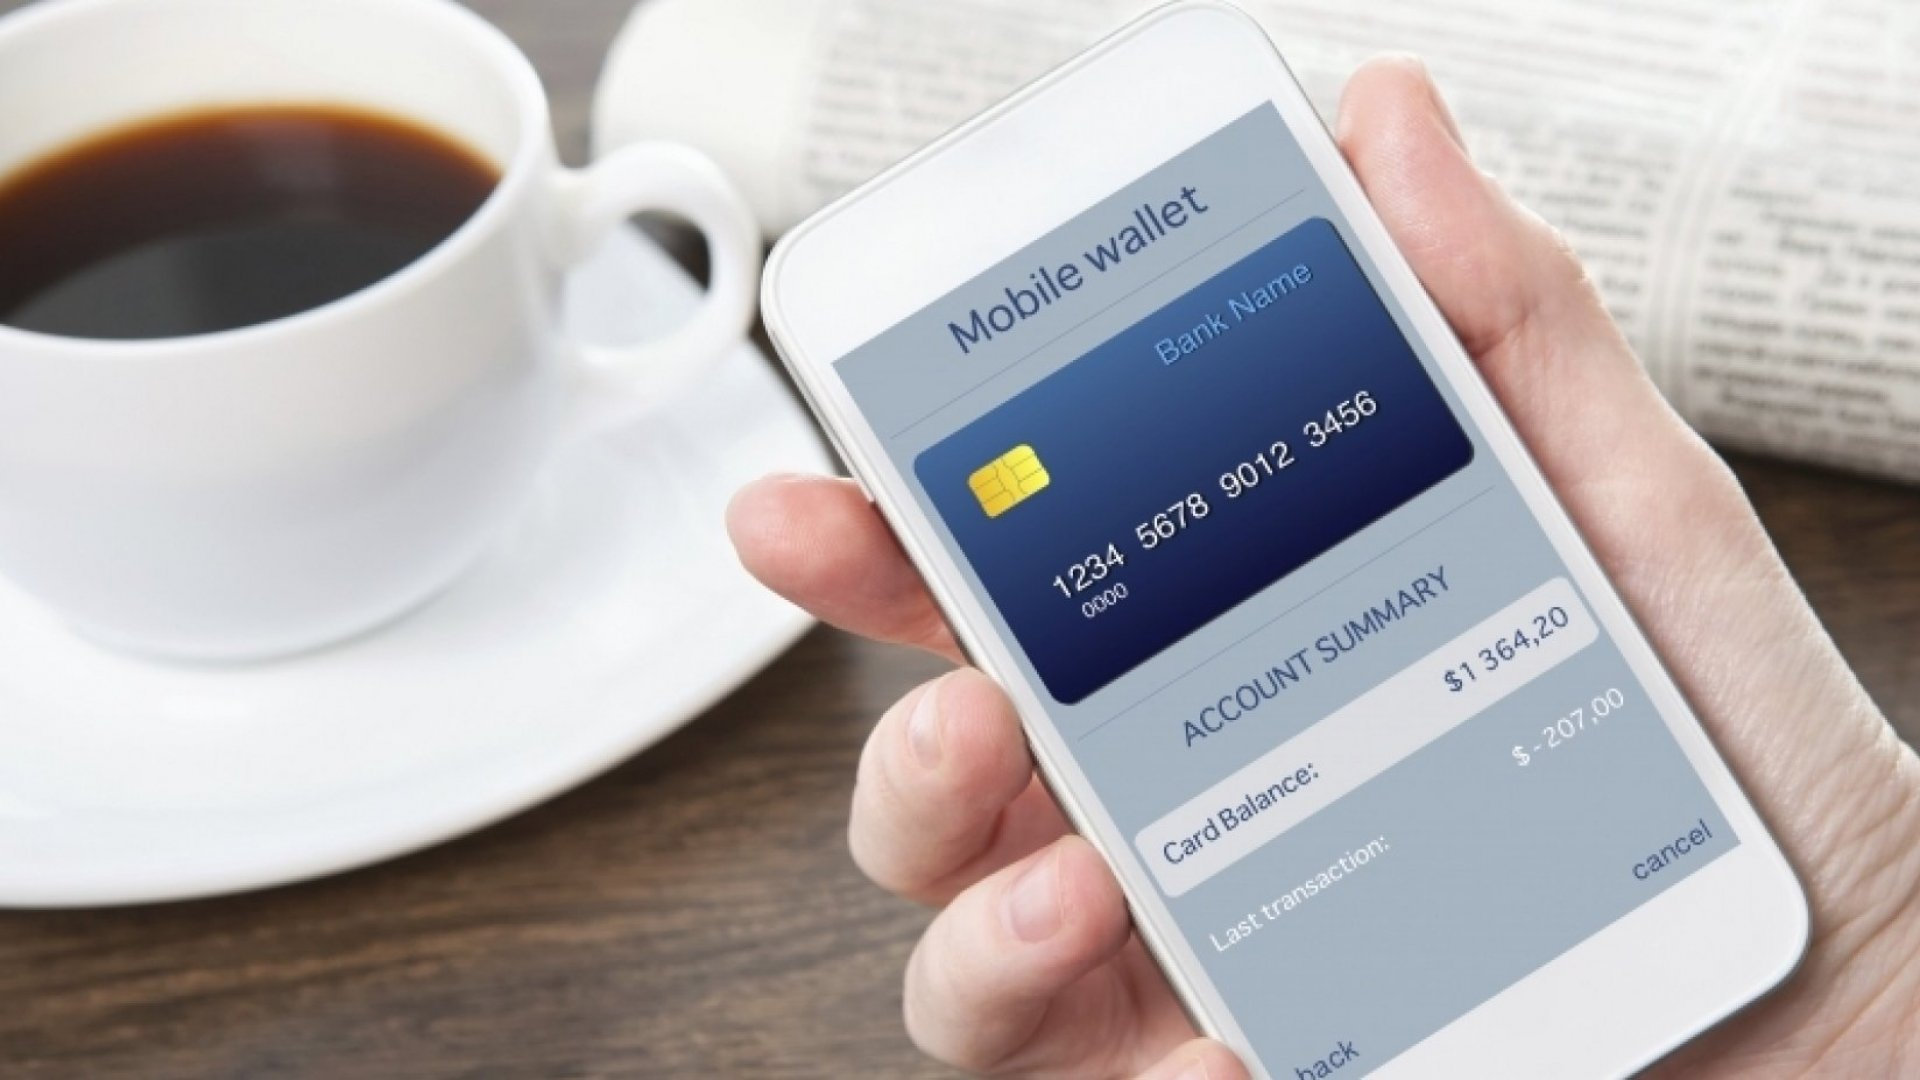 Five Reasons to 'Keep Calm and Carry On' With Mobile Payments